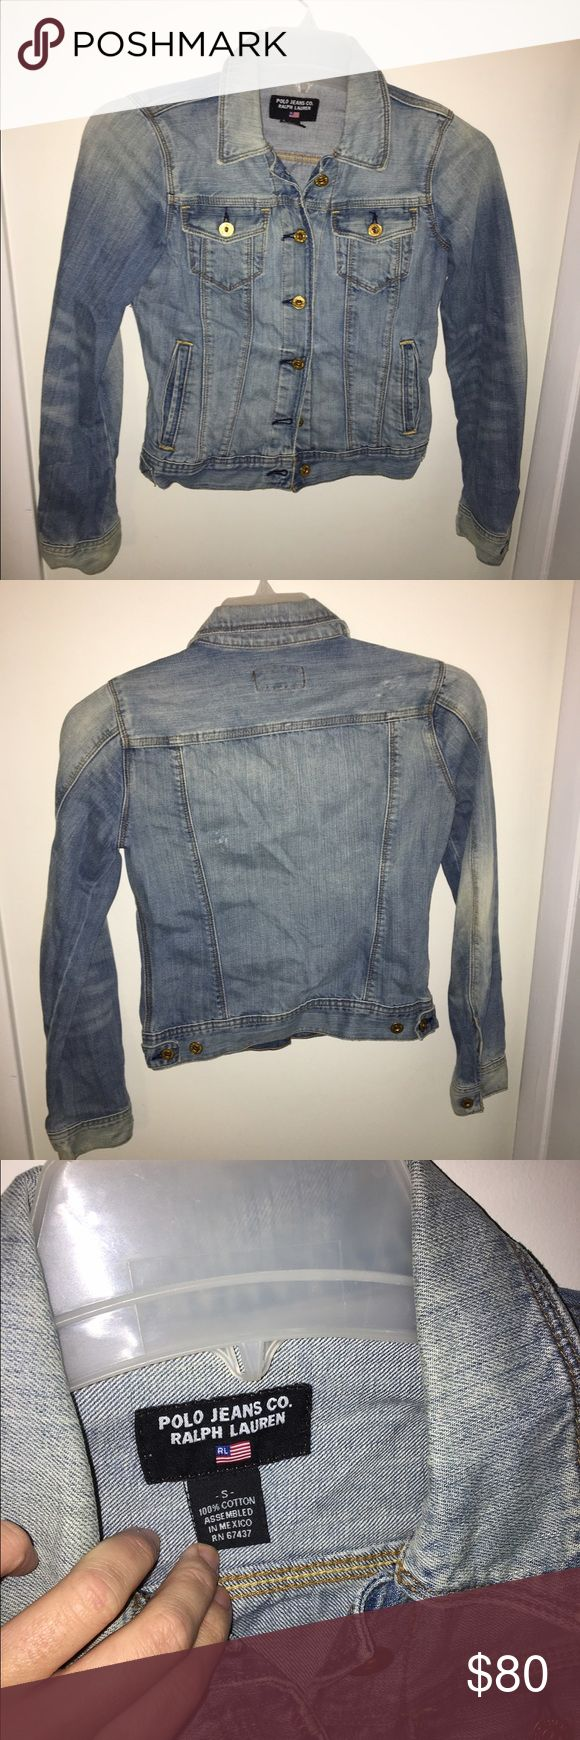 Ralph Lauren Polo Jeans Co. Jean Jacket Barely worn Ralph Lauren Polo jean jacket in perfect condition Can be worn as shirt or jacket, super soft fabric! Message with questions! Ralph Lauren Jackets & Coats